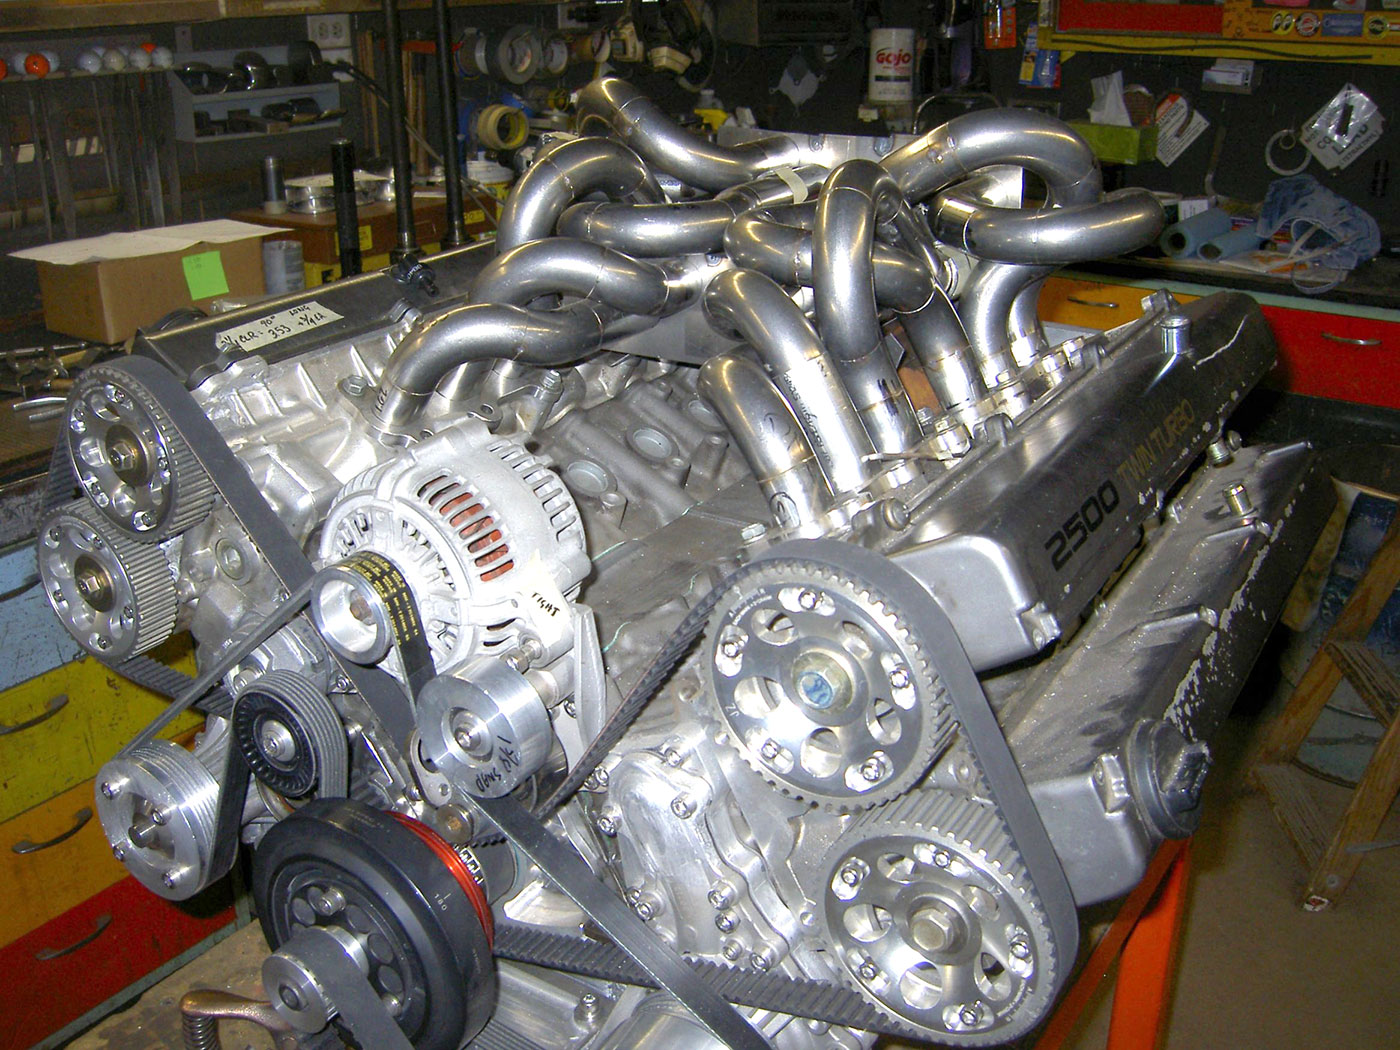 It Has Been A While Since We Last Wrote About The V12 Engine Build Using Two Toyota Inline Six Engines Recently Relative Of Builder Posted New